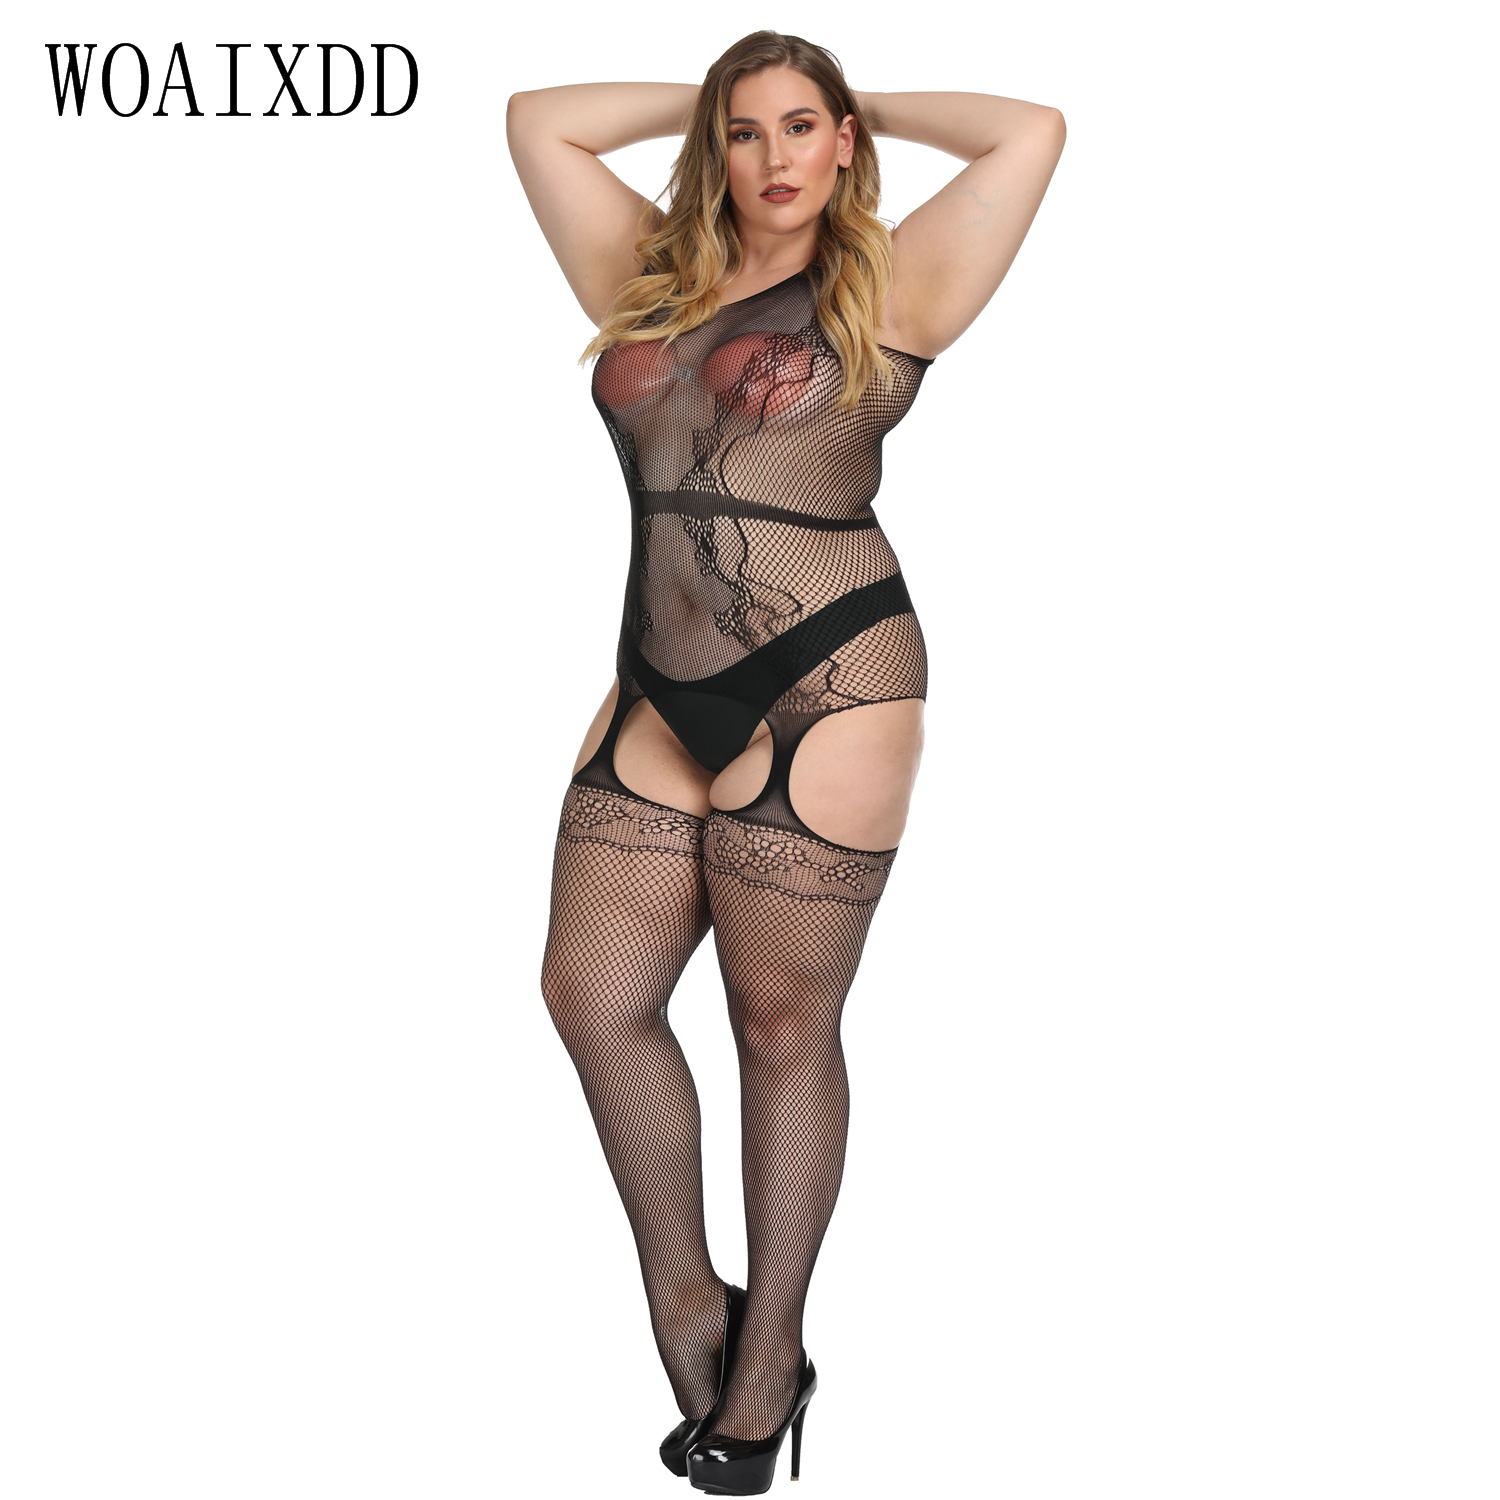 8 styles <font><b>XXXL</b></font> Plus Size Bodysuits Women Erotic <font><b>Sexy</b></font> Lingerie Hot Bodystocking <font><b>Costumes</b></font> Open Crotch Babydolls Erotic Underwear image